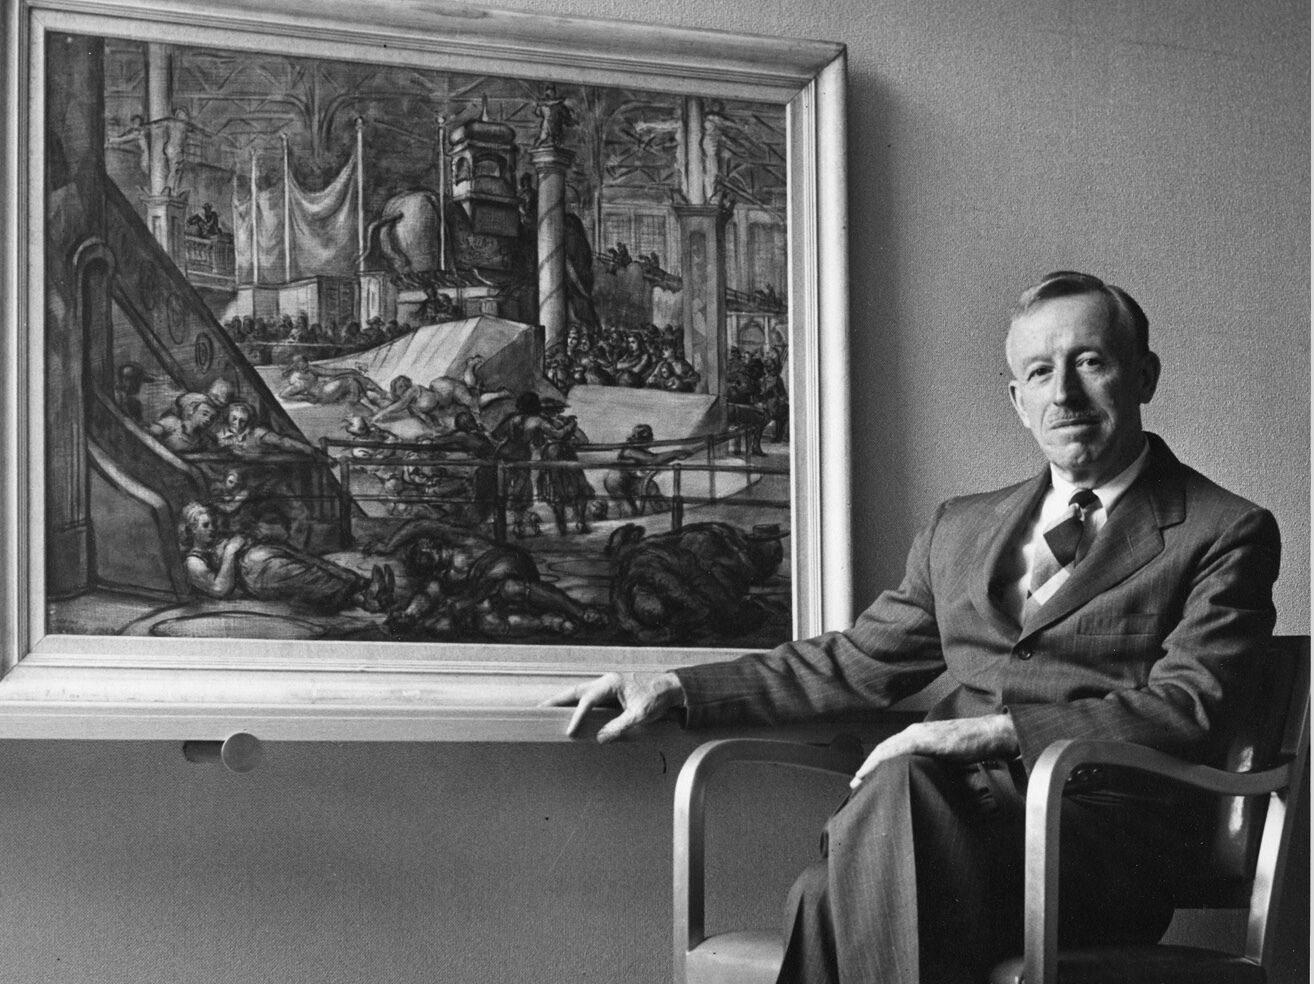 A man sits on a chair in front of a large, framed painting.